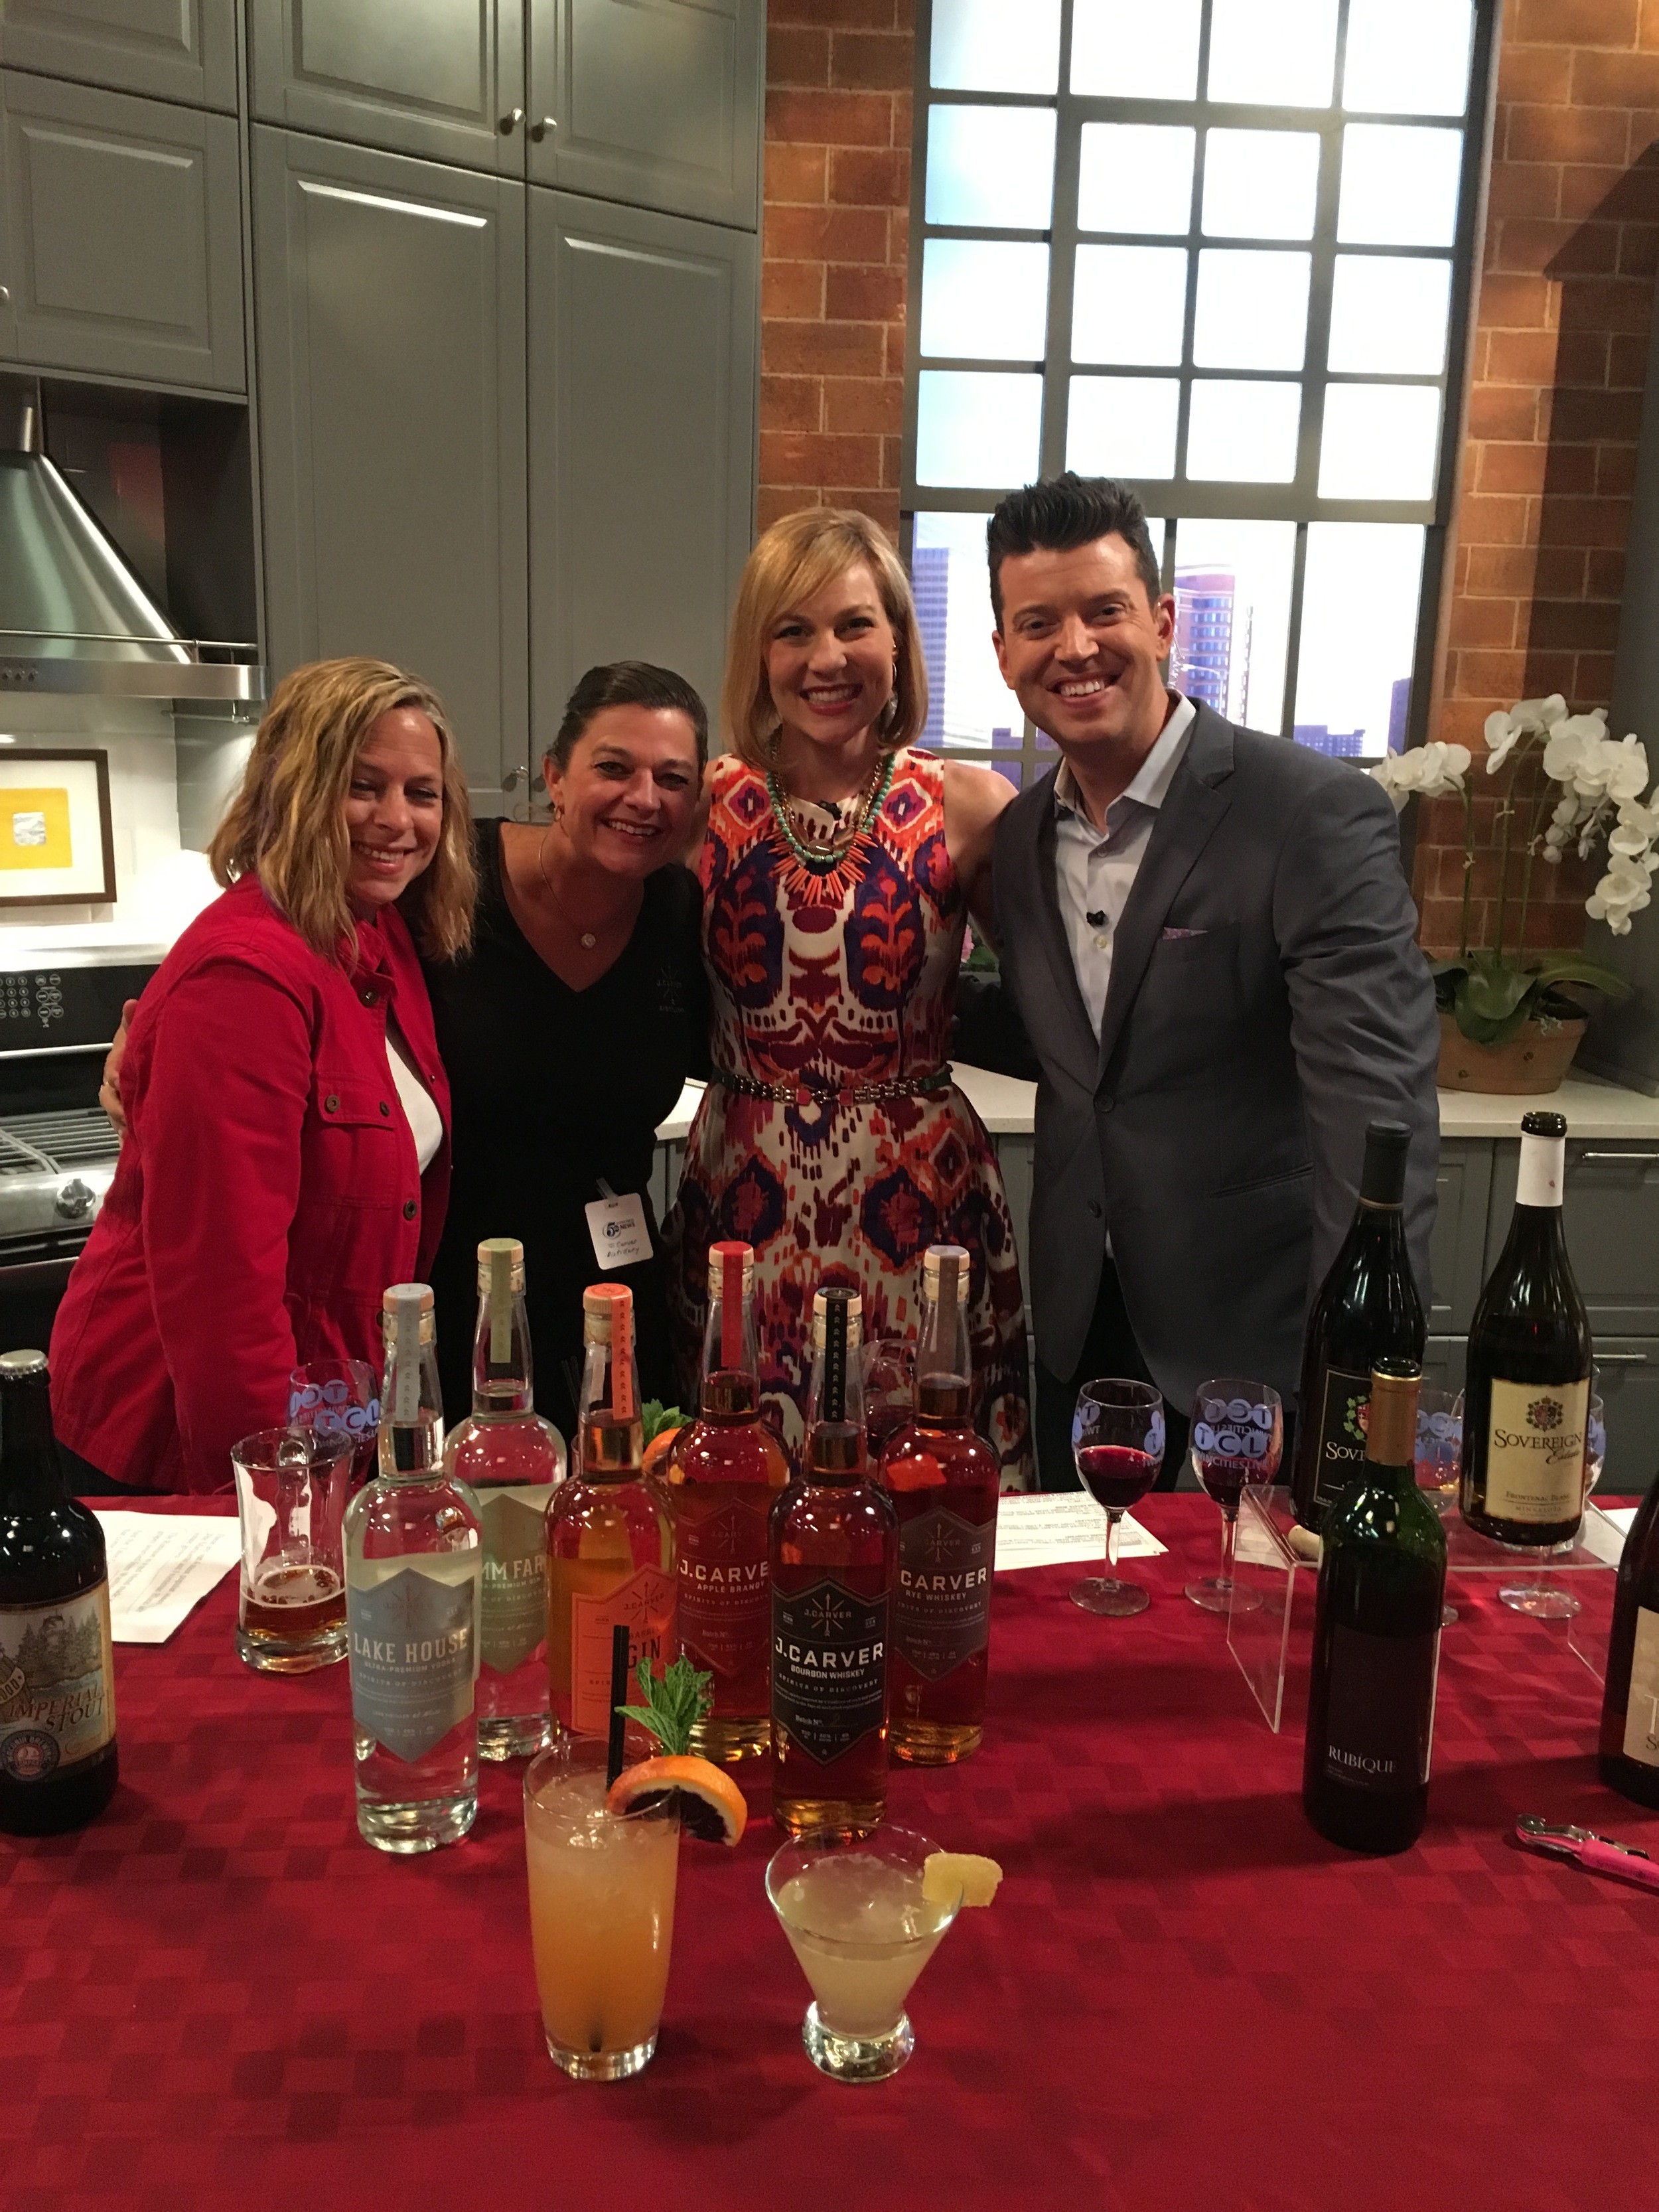 Stephanie March, Gina Holman, Elizabeth Ries, and Steve Patterson hosts of Twin Cities Live